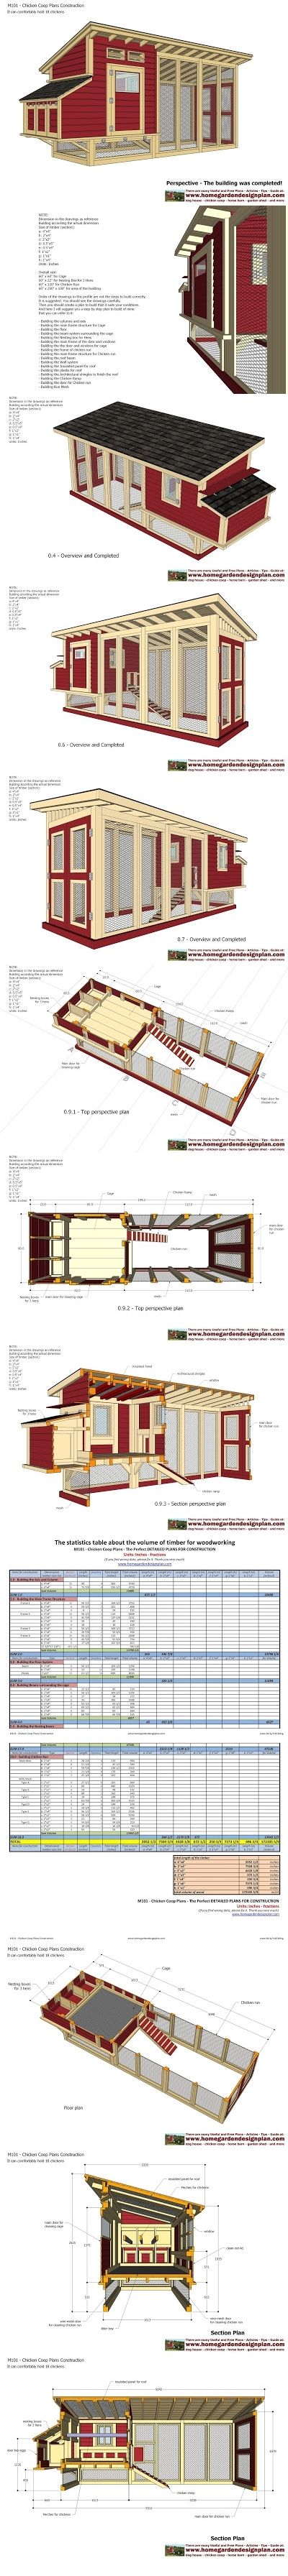 home garden plans: M101 - Chicken Coop Plans Construction - Chicken Coop Design - How To Build A Chicken Coop